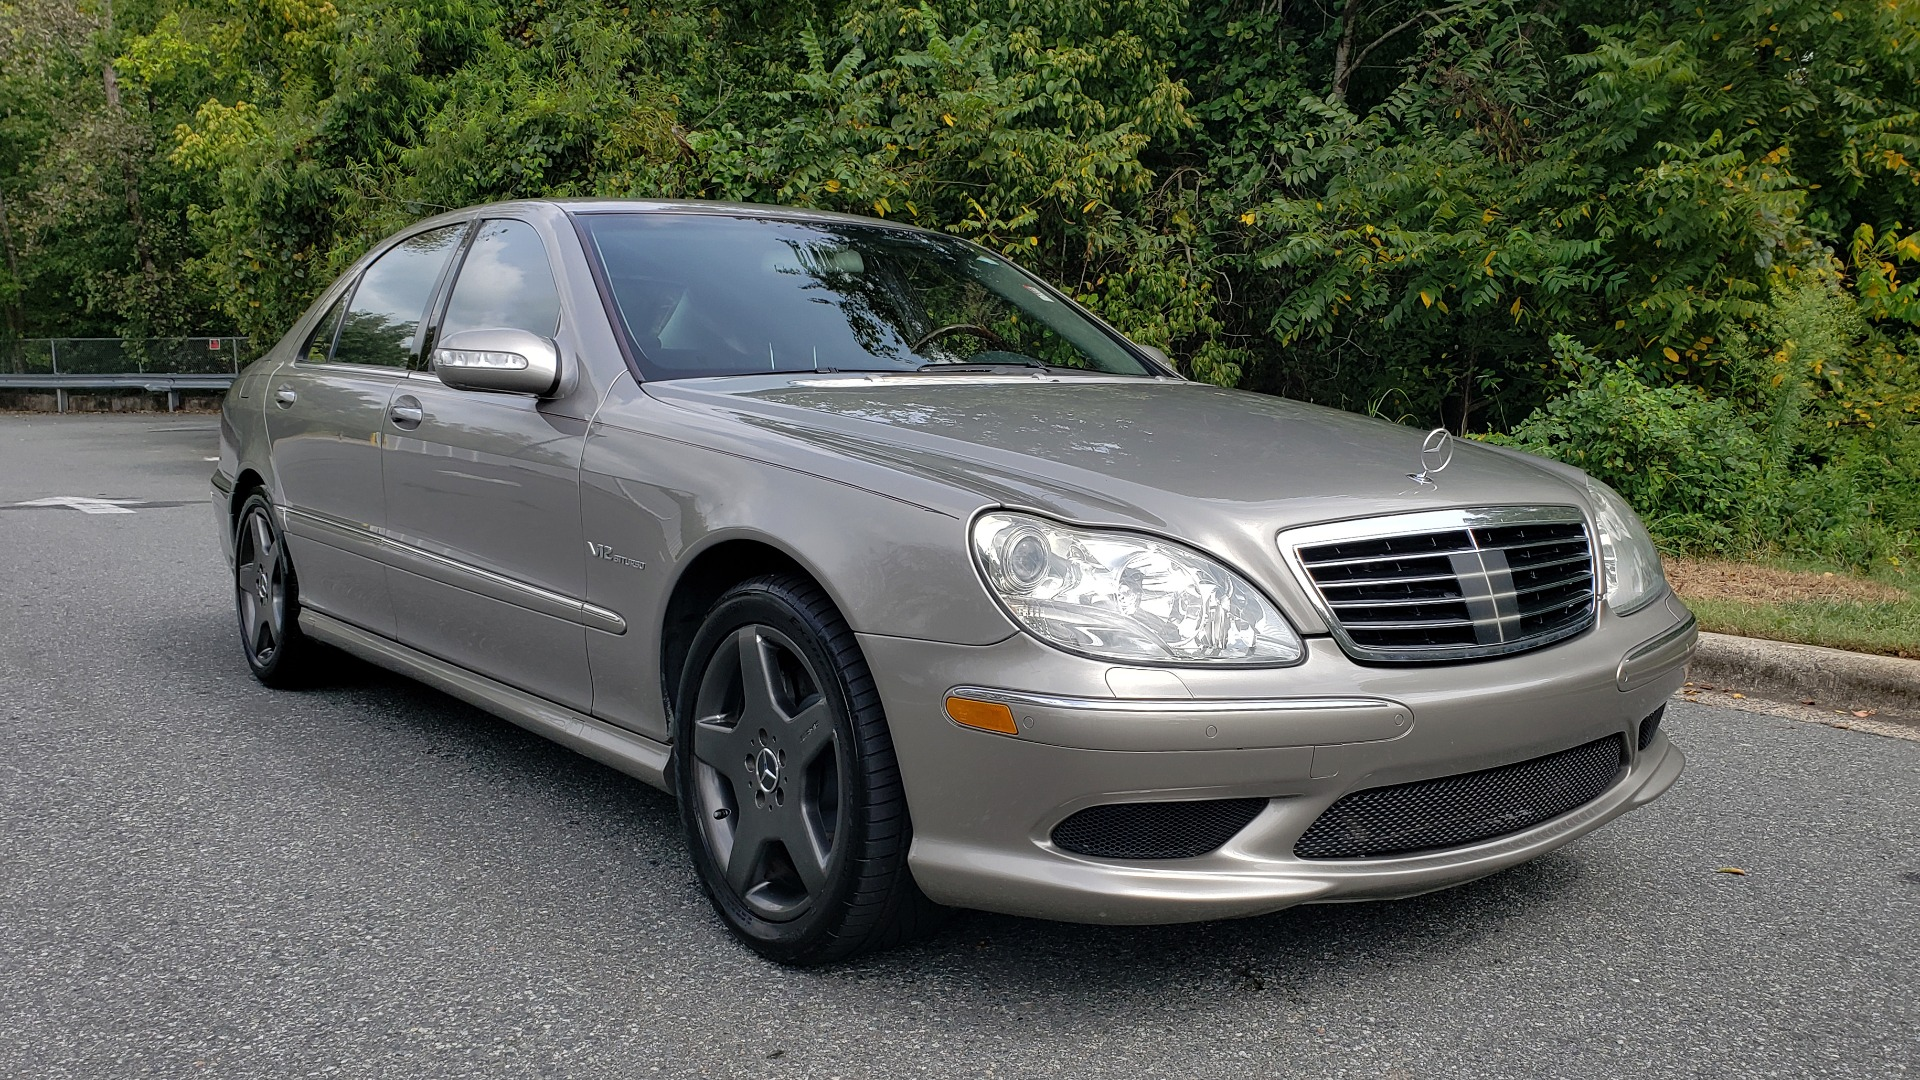 Used 2003 Mercedes-Benz S-CLASS S600 5.5L V12 SEDAN / SUNROOF / KEYLESS-GO / BOSE for sale Sold at Formula Imports in Charlotte NC 28227 4